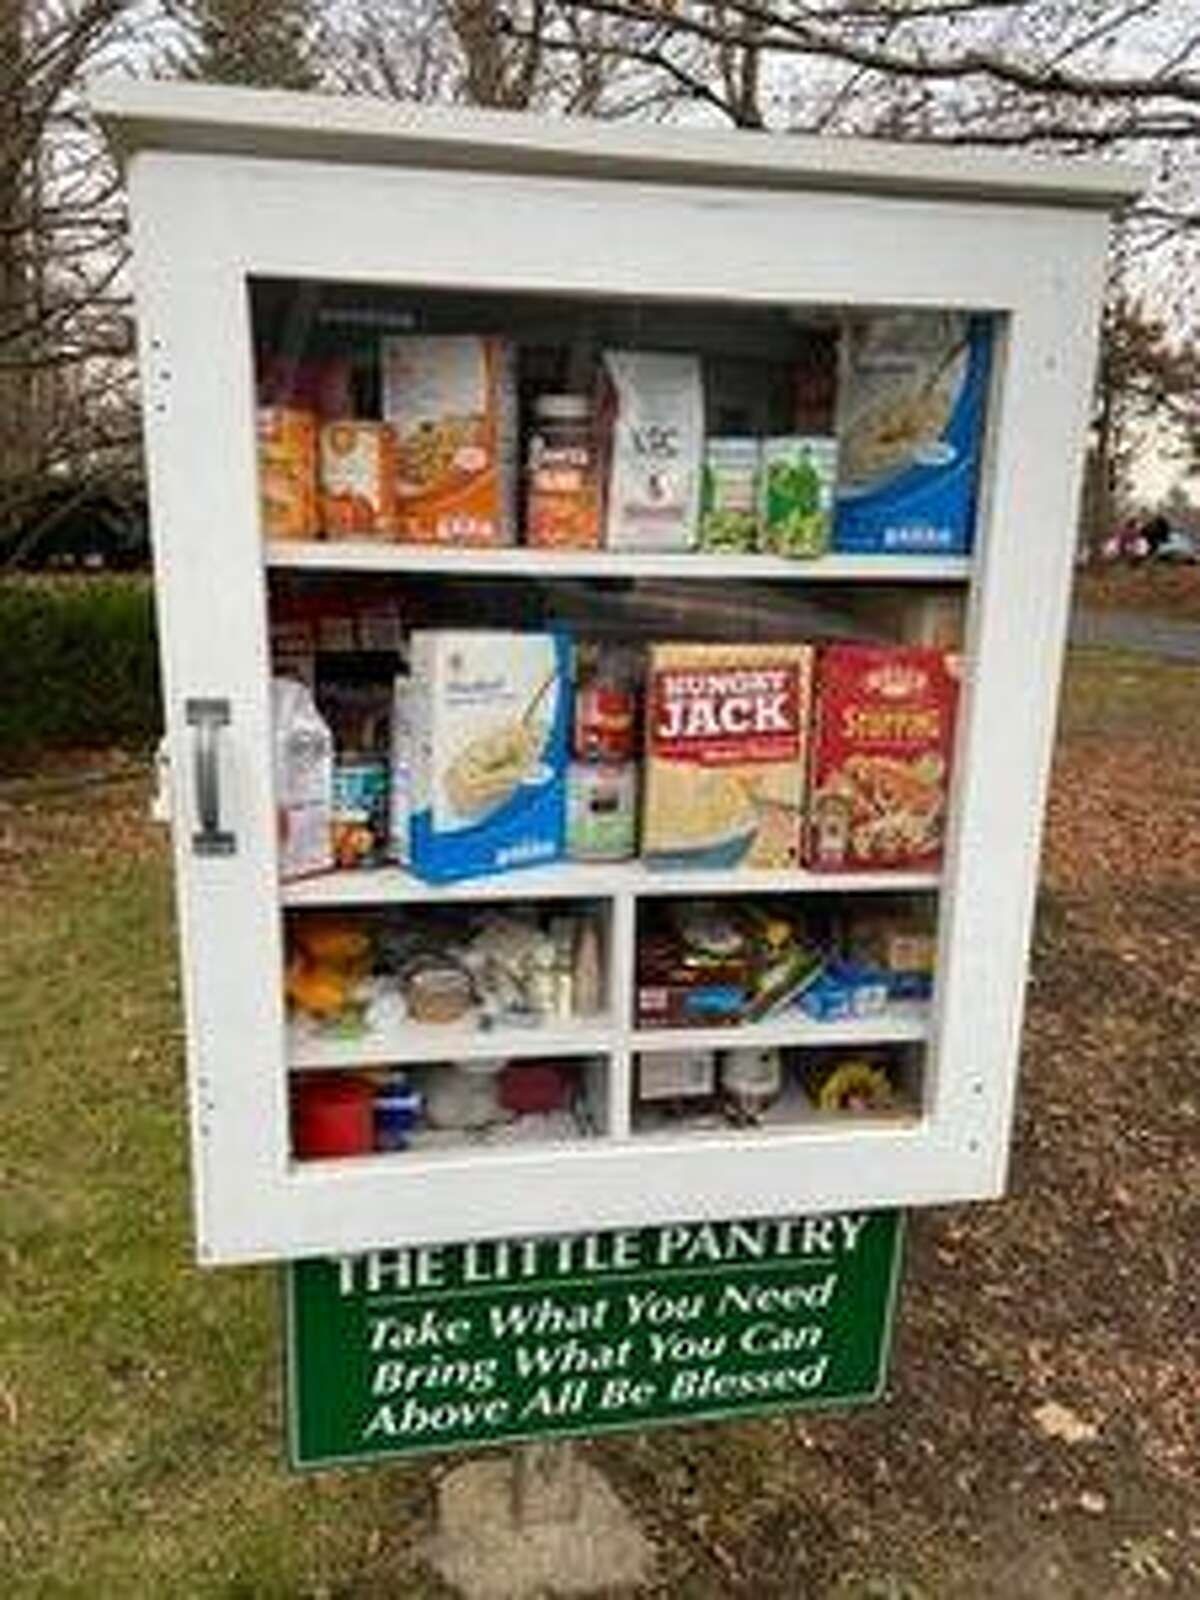 """The Little Pantry provides canned and packaged food items to families in need on a """"take what you need, bring what you can"""" basis."""